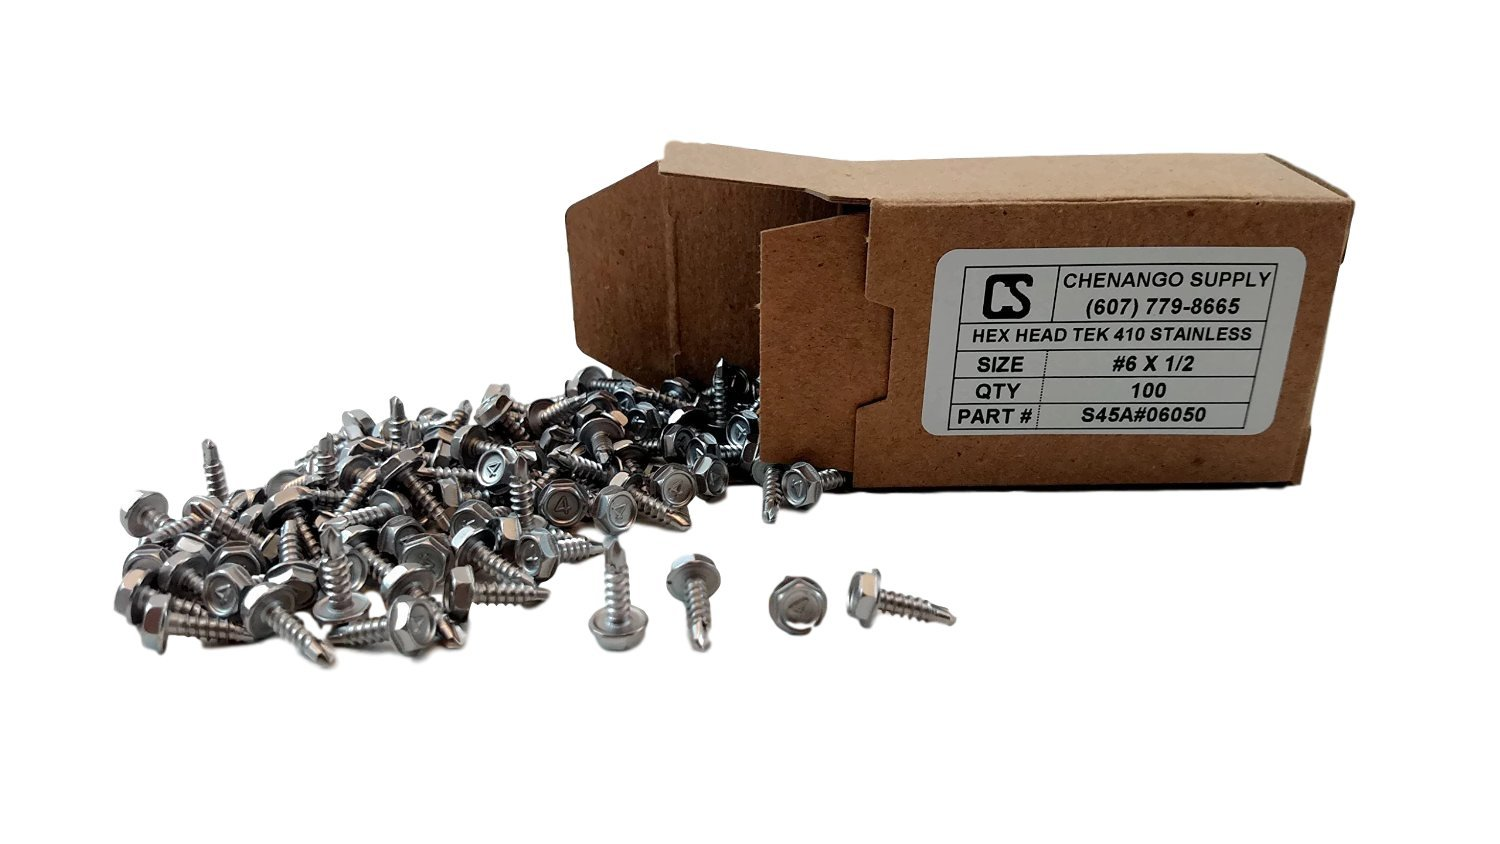 410 Stainless Steel #6 x 1//2 Inch Self Driller Stainless #6 x 1//2 Inch Hex Washer Head Self Drilling Sheet Metal Tek Screws With Drill Point 100 pieces Chenango Supply S45A#06050